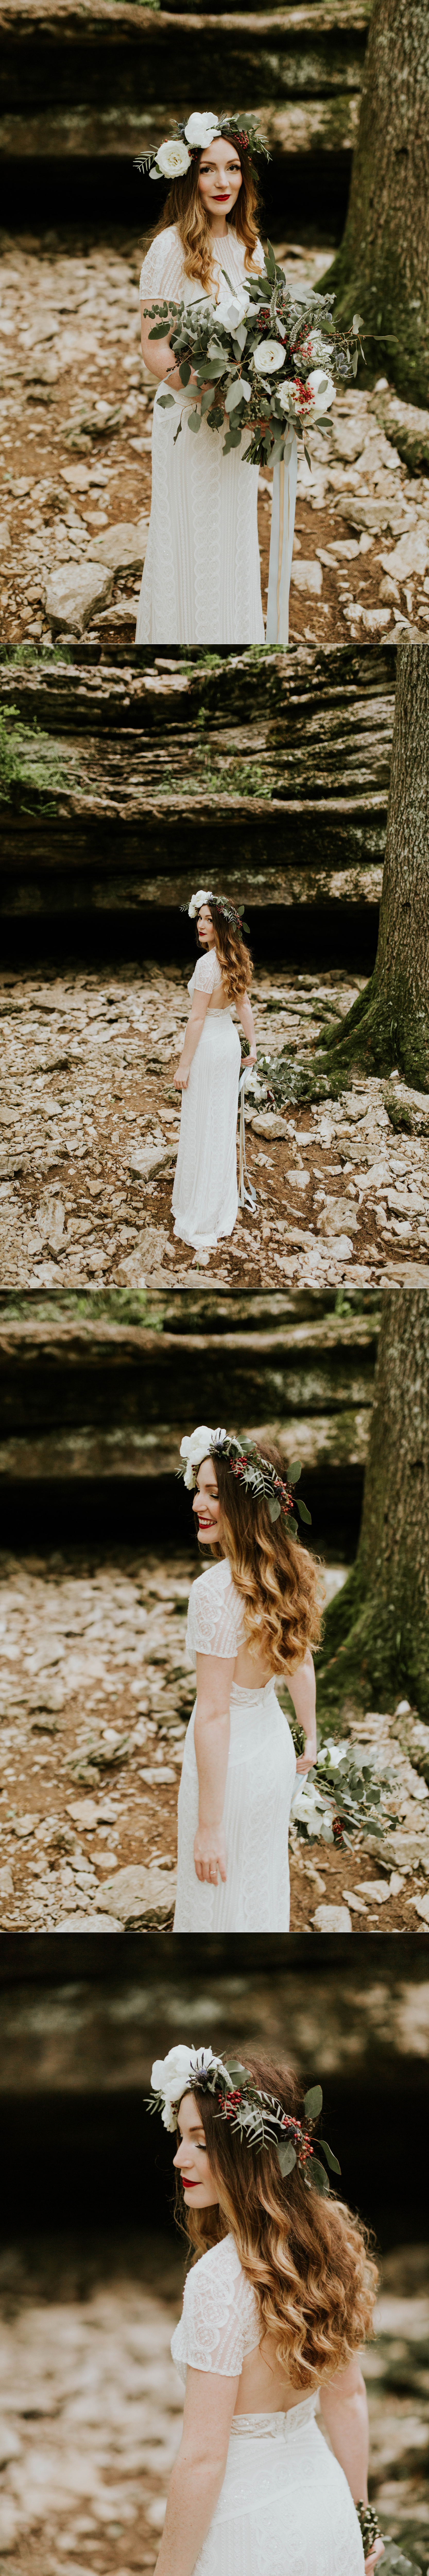 ThroughVictoriasLens_CedarsOfLebanon_Bridals13.jpg